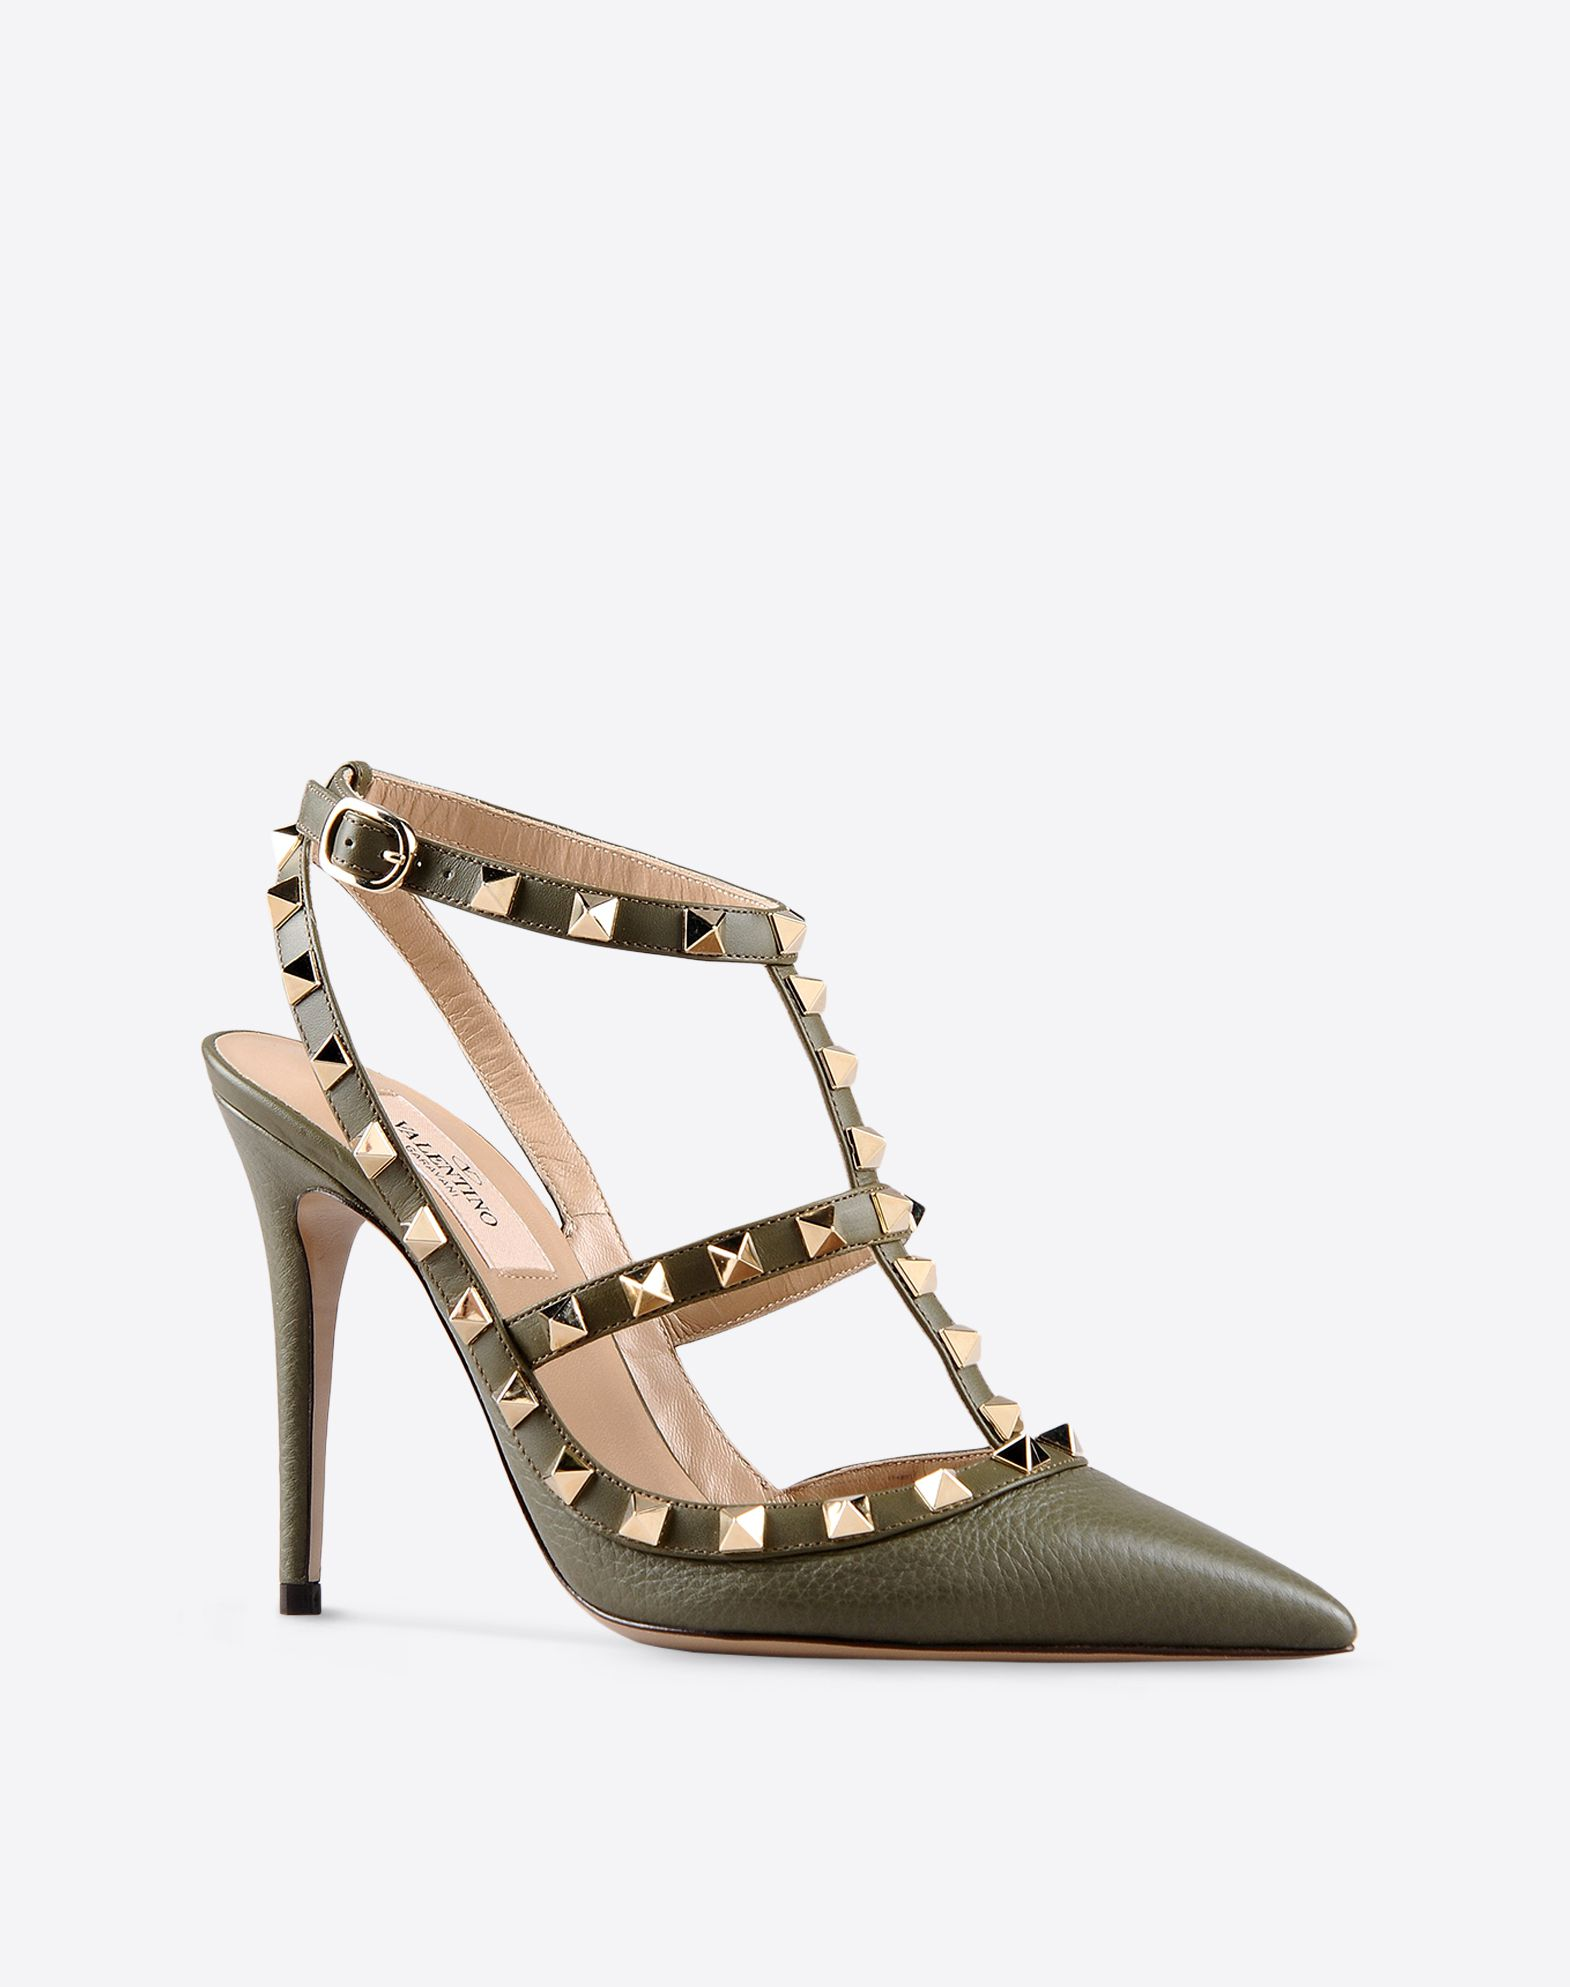 VALENTINO Studs Solid color Leather sole Buckling ankle strap closure Narrow toeline Spike heel  44751660qx